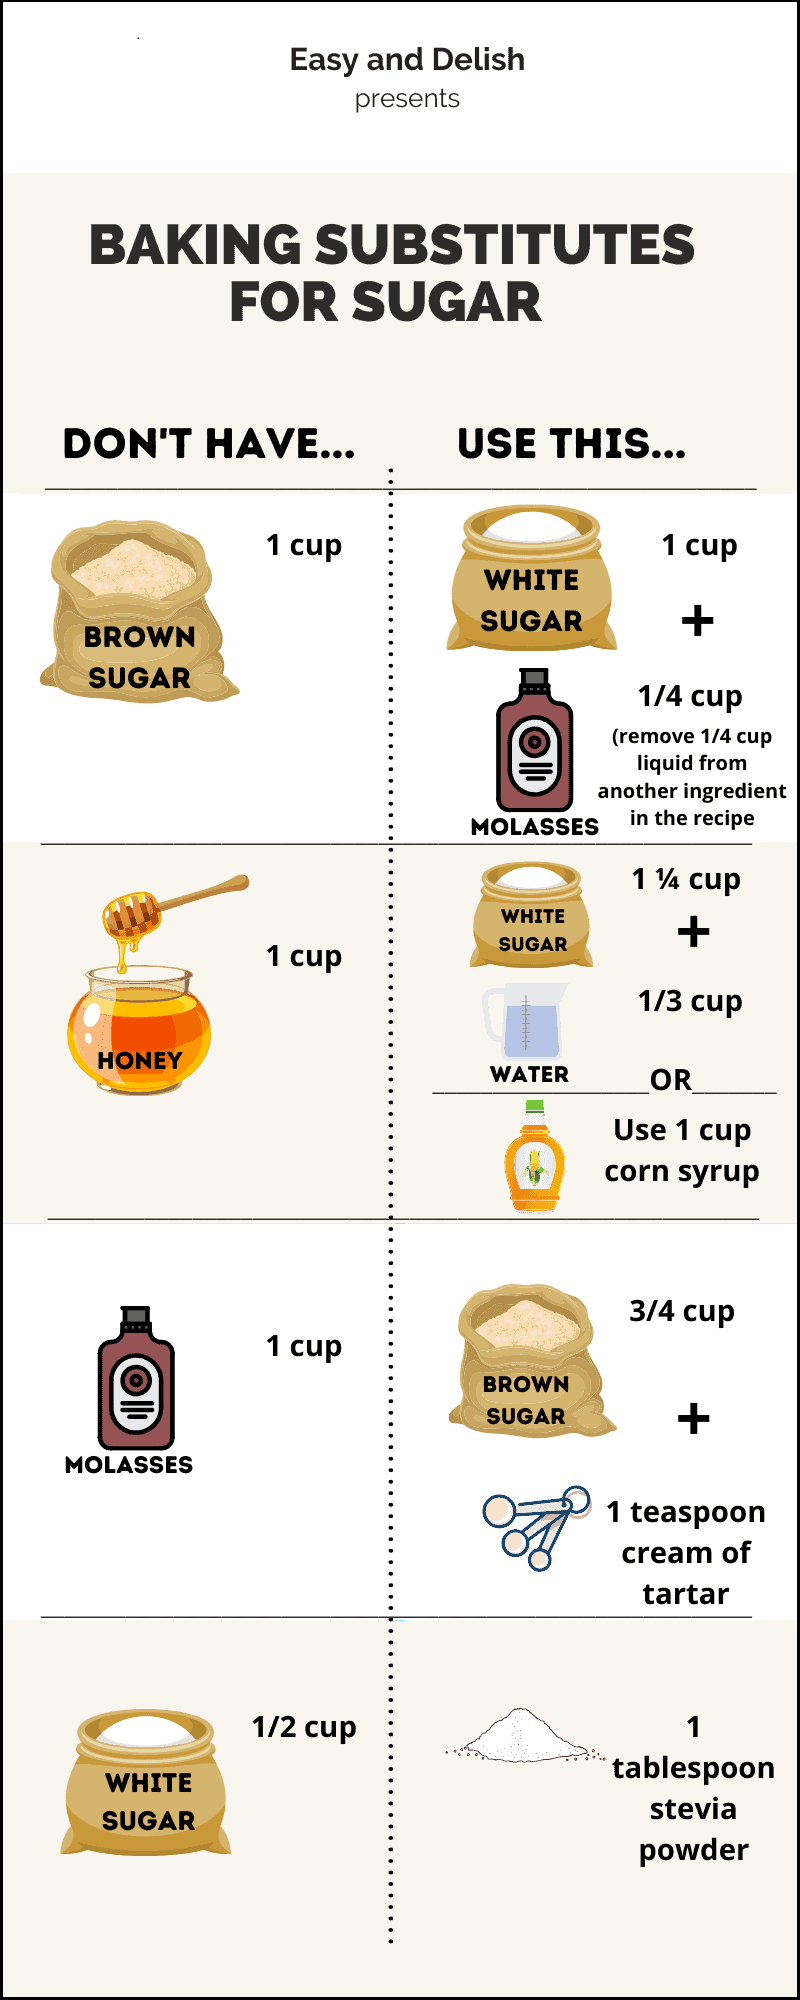 chart with baking substitutes for sugar (all the information in the chart is in the paragraphs below the chart)